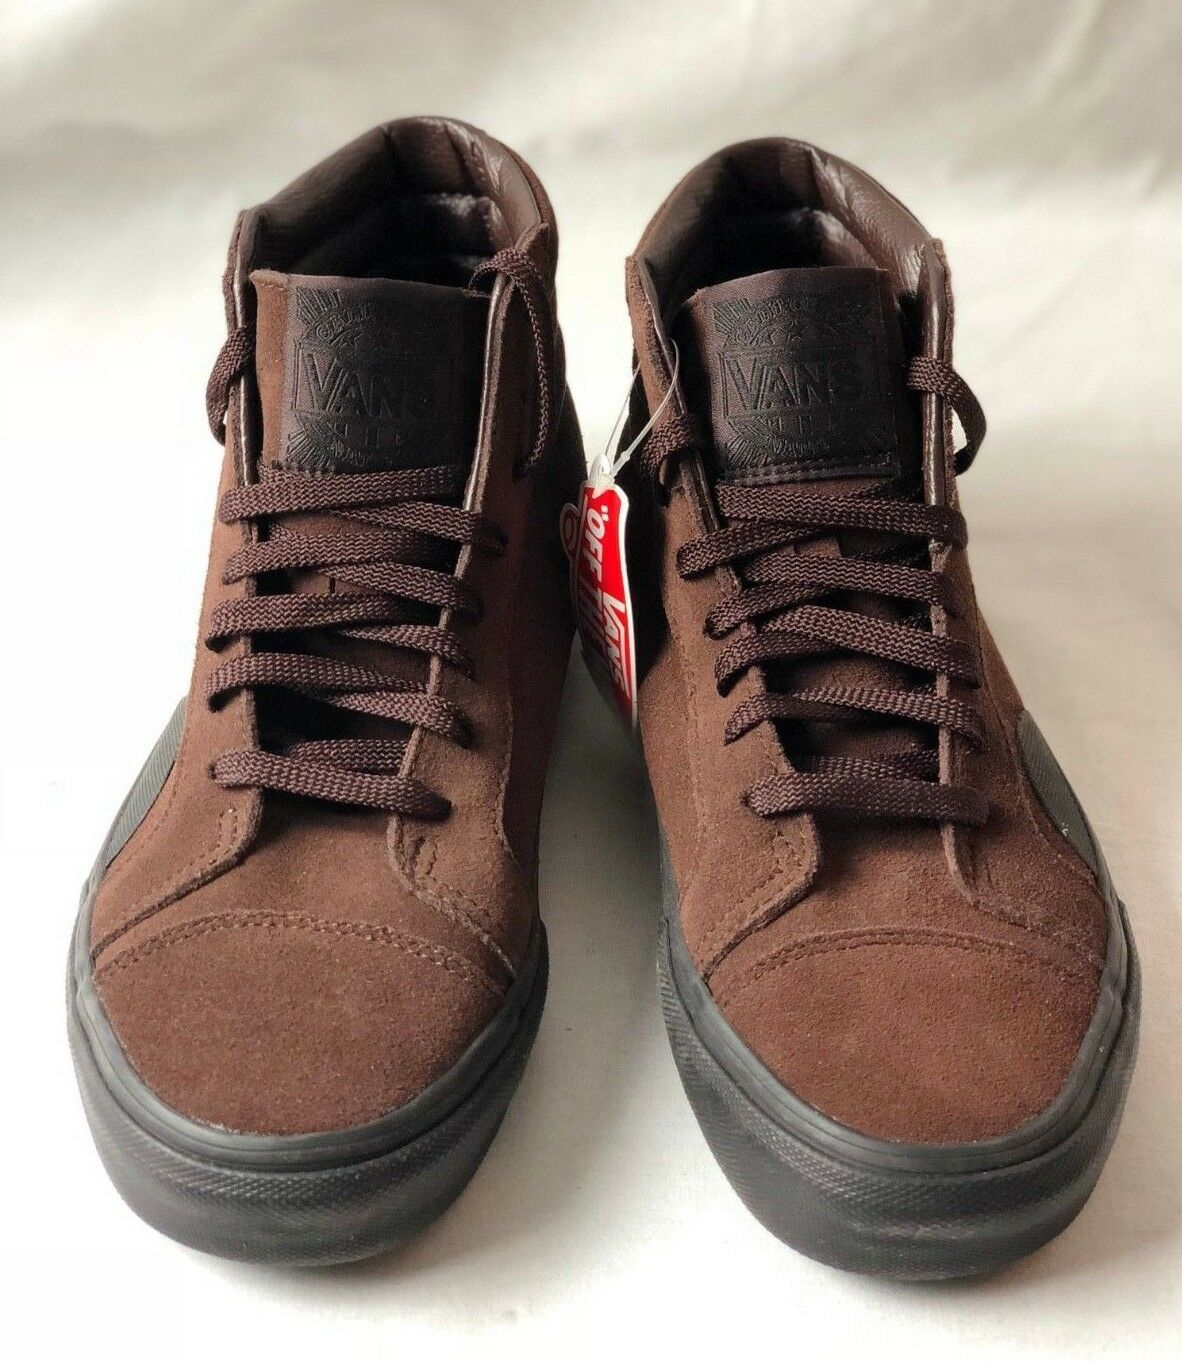 Good Selling All over the World:Vans Style 238 Native Seal Suede Seal Native Brown/Black Men's 7, Women's 8.5:Men/Women a70d47